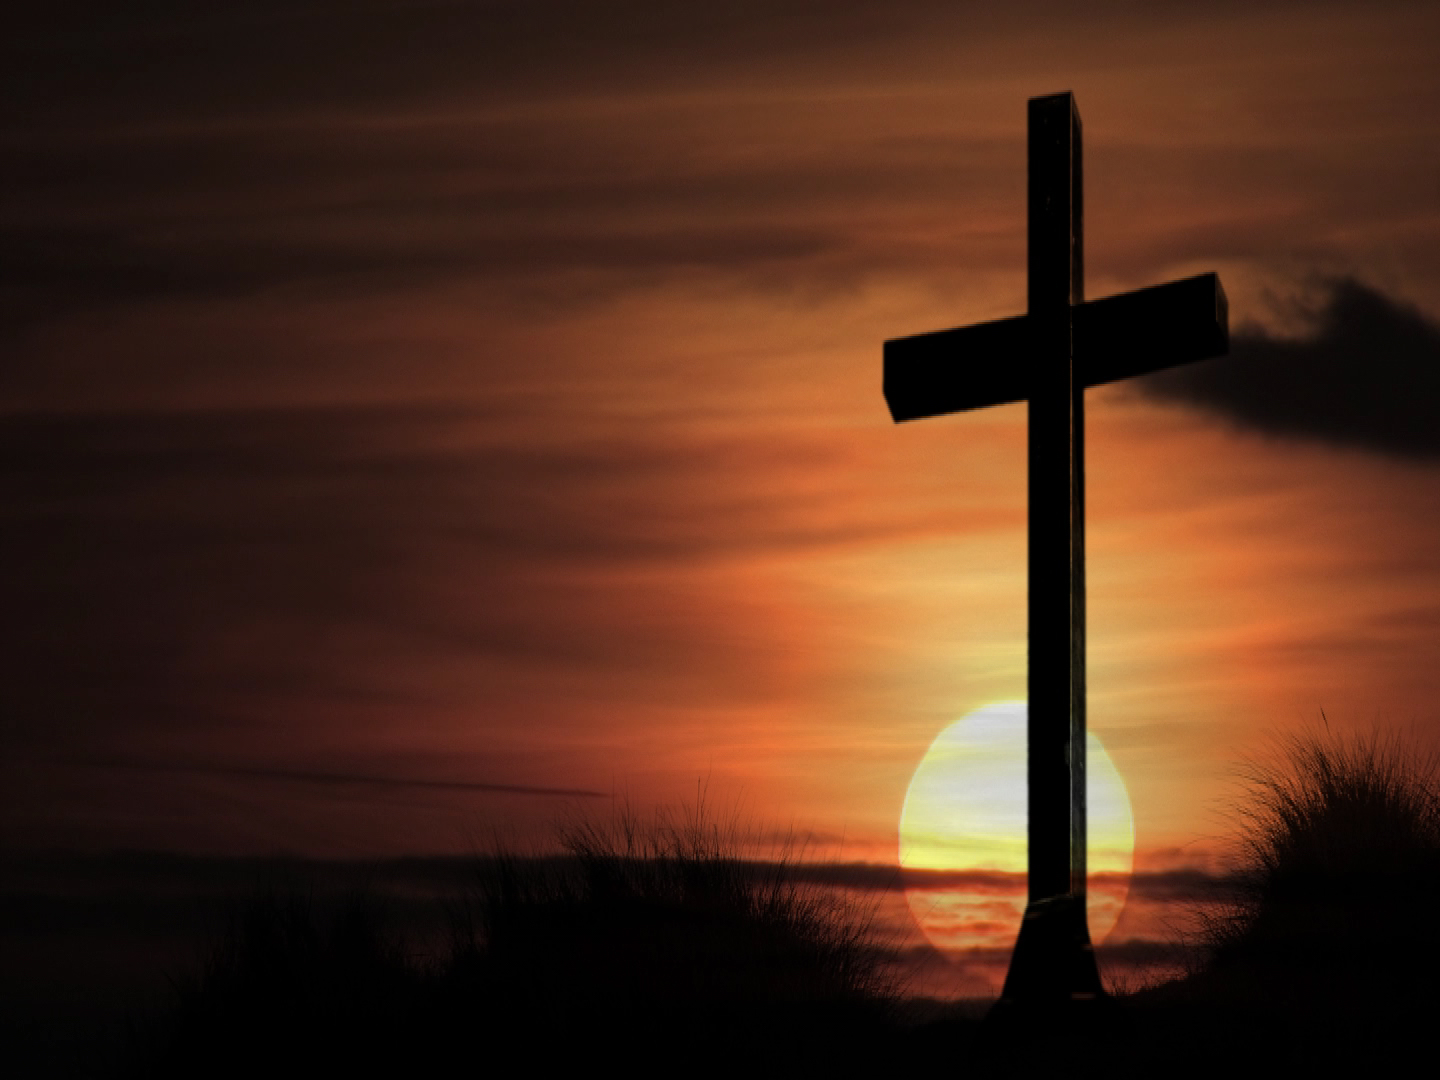 Cross bathing in sunset